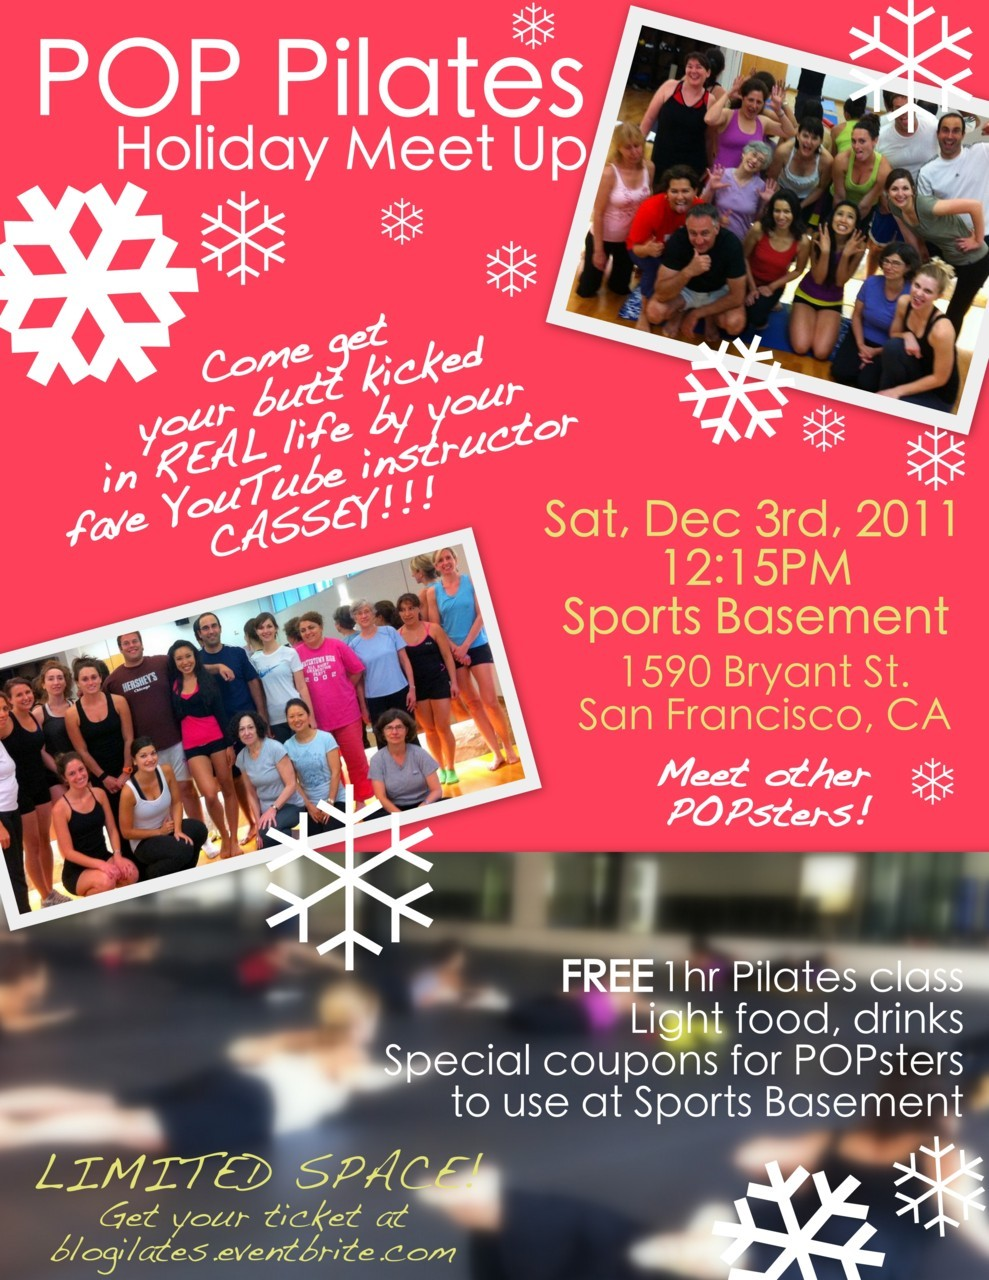 RSVP for the POP Pilates Meetup on Dec 3 today! Space is limited. So only request a ticket if you really plan on coming. Can't wait to meet you guys! Will also be live streaming the event for POPsters all over the world! Maybe we can have some of our ambassadors on a live panel? Hahahaha!!! Make sure you wear your MuffinTop shirts so it's like we're a secret pop army in uniform… RSVP here Who's coming!!??